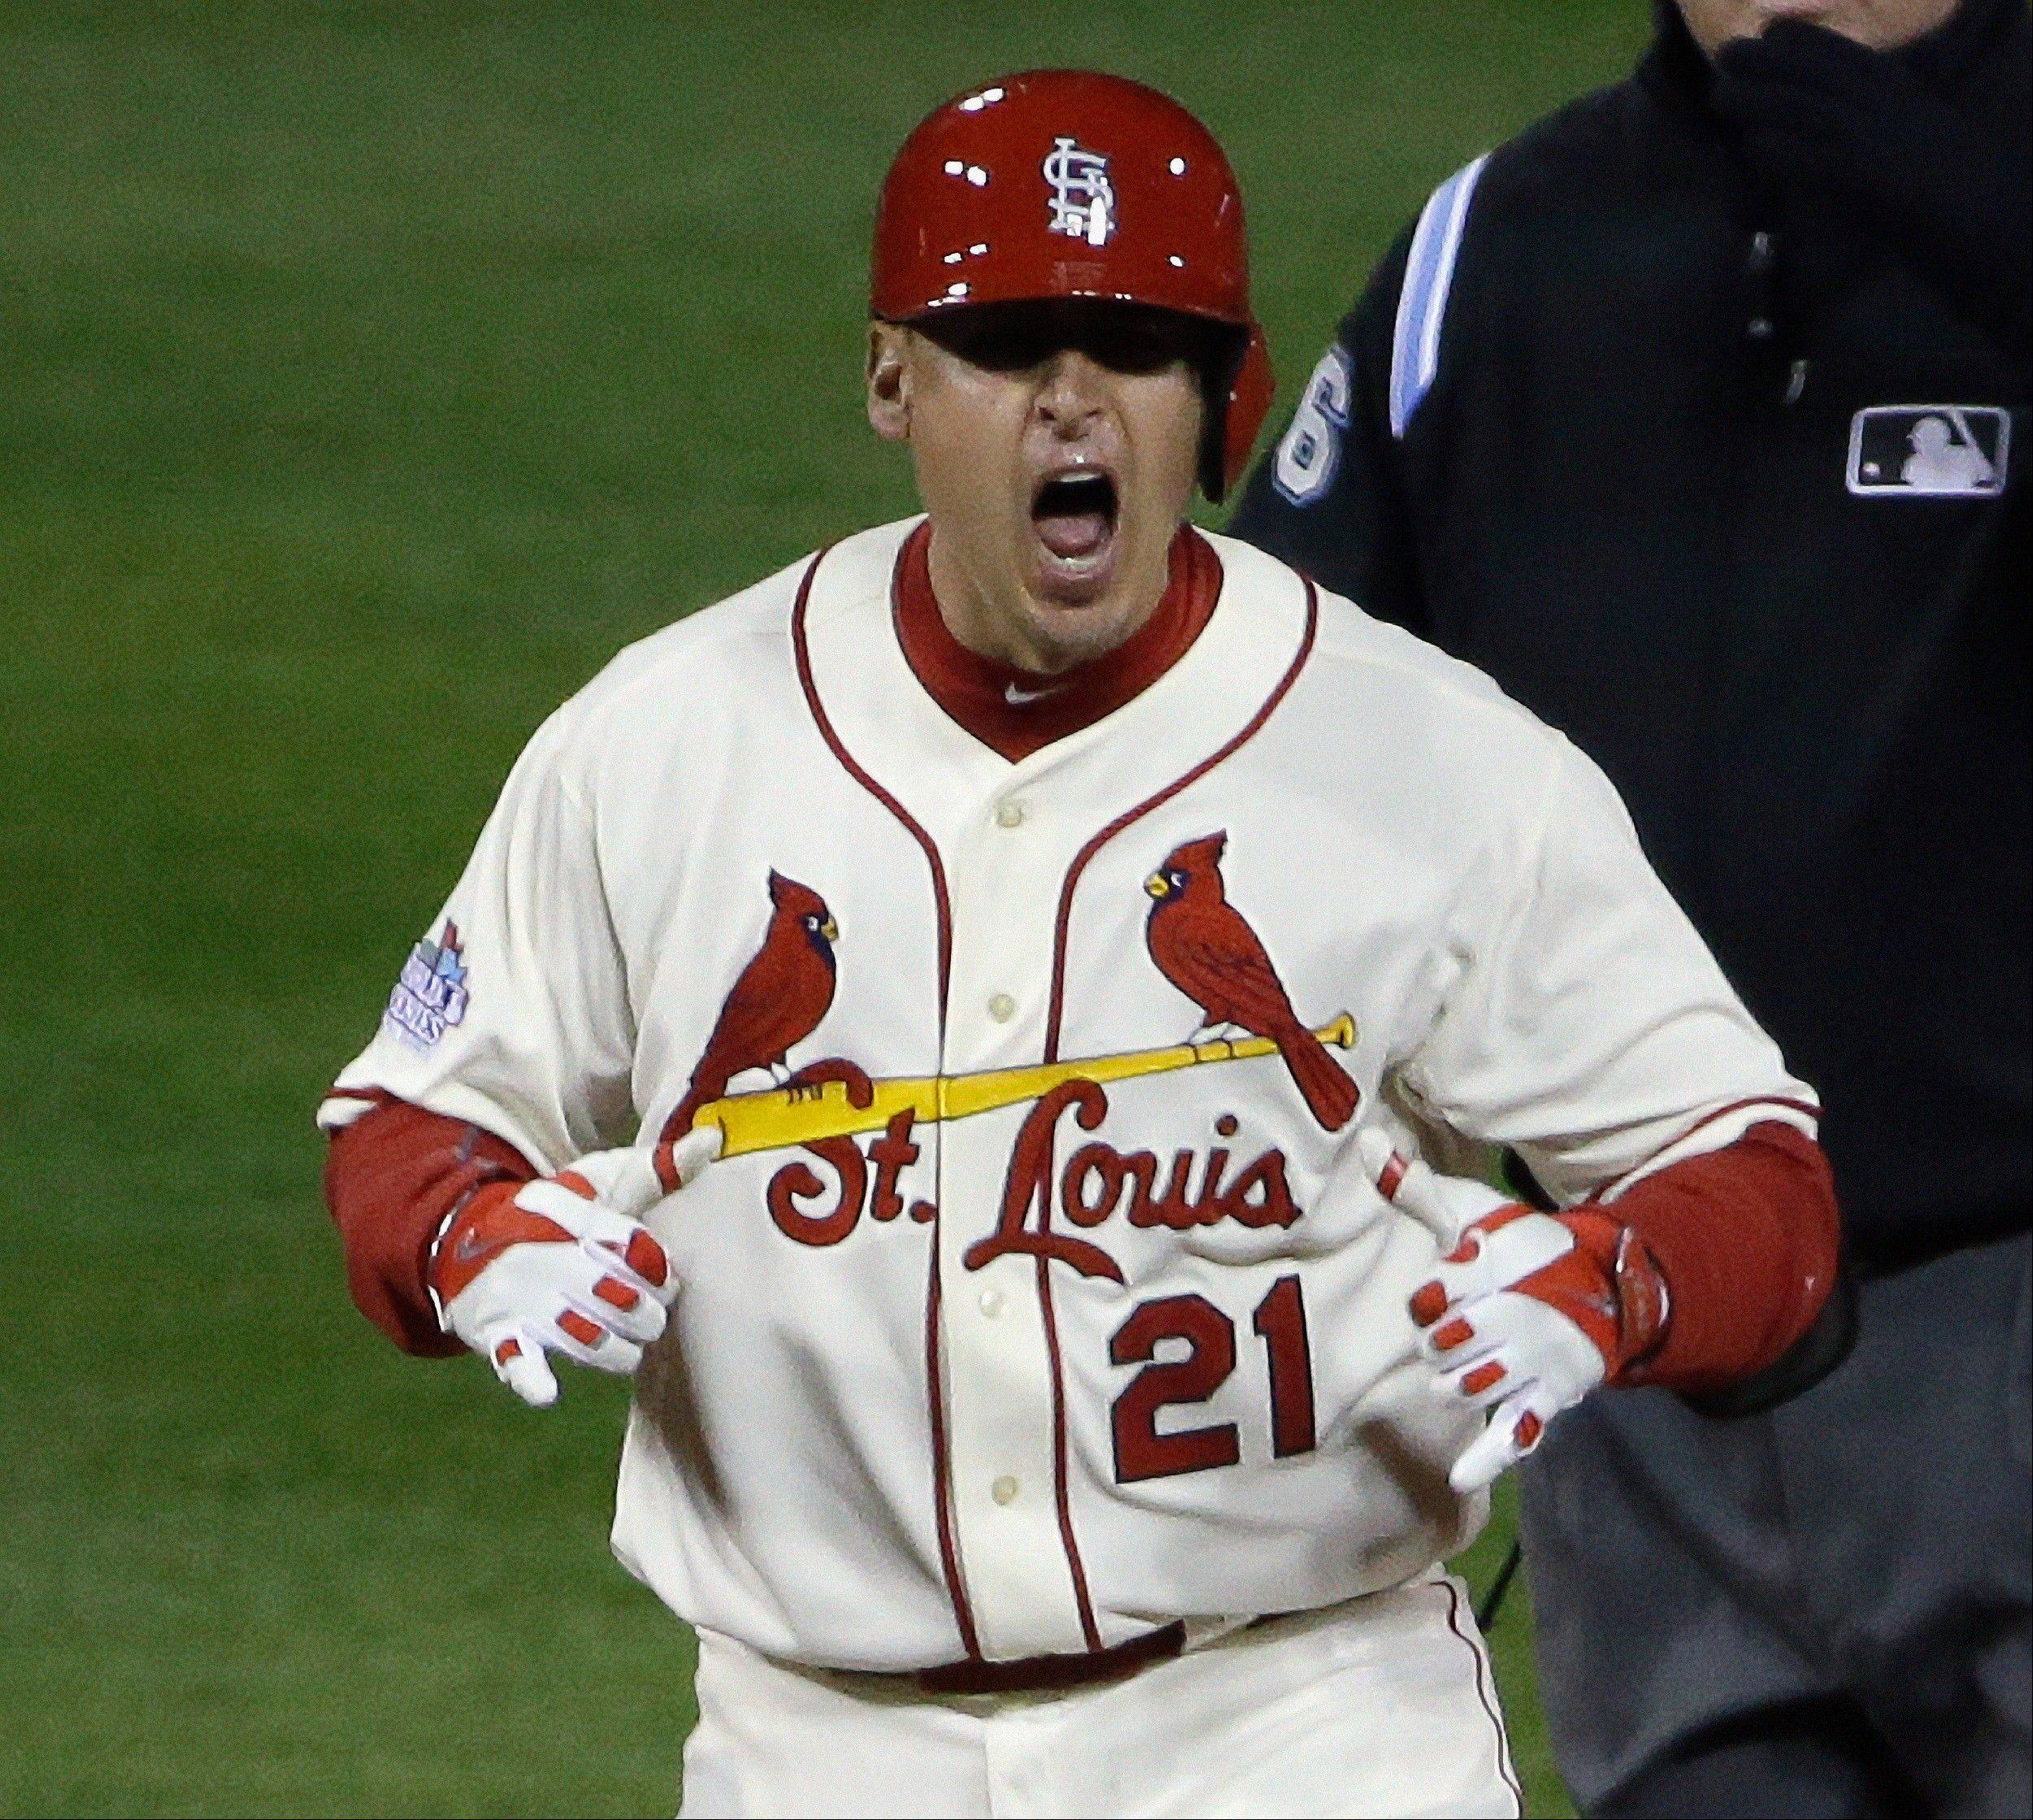 St. Louis Cardinals' Allen Craig reacts after hitting a double during the ninth inning of Game 3.